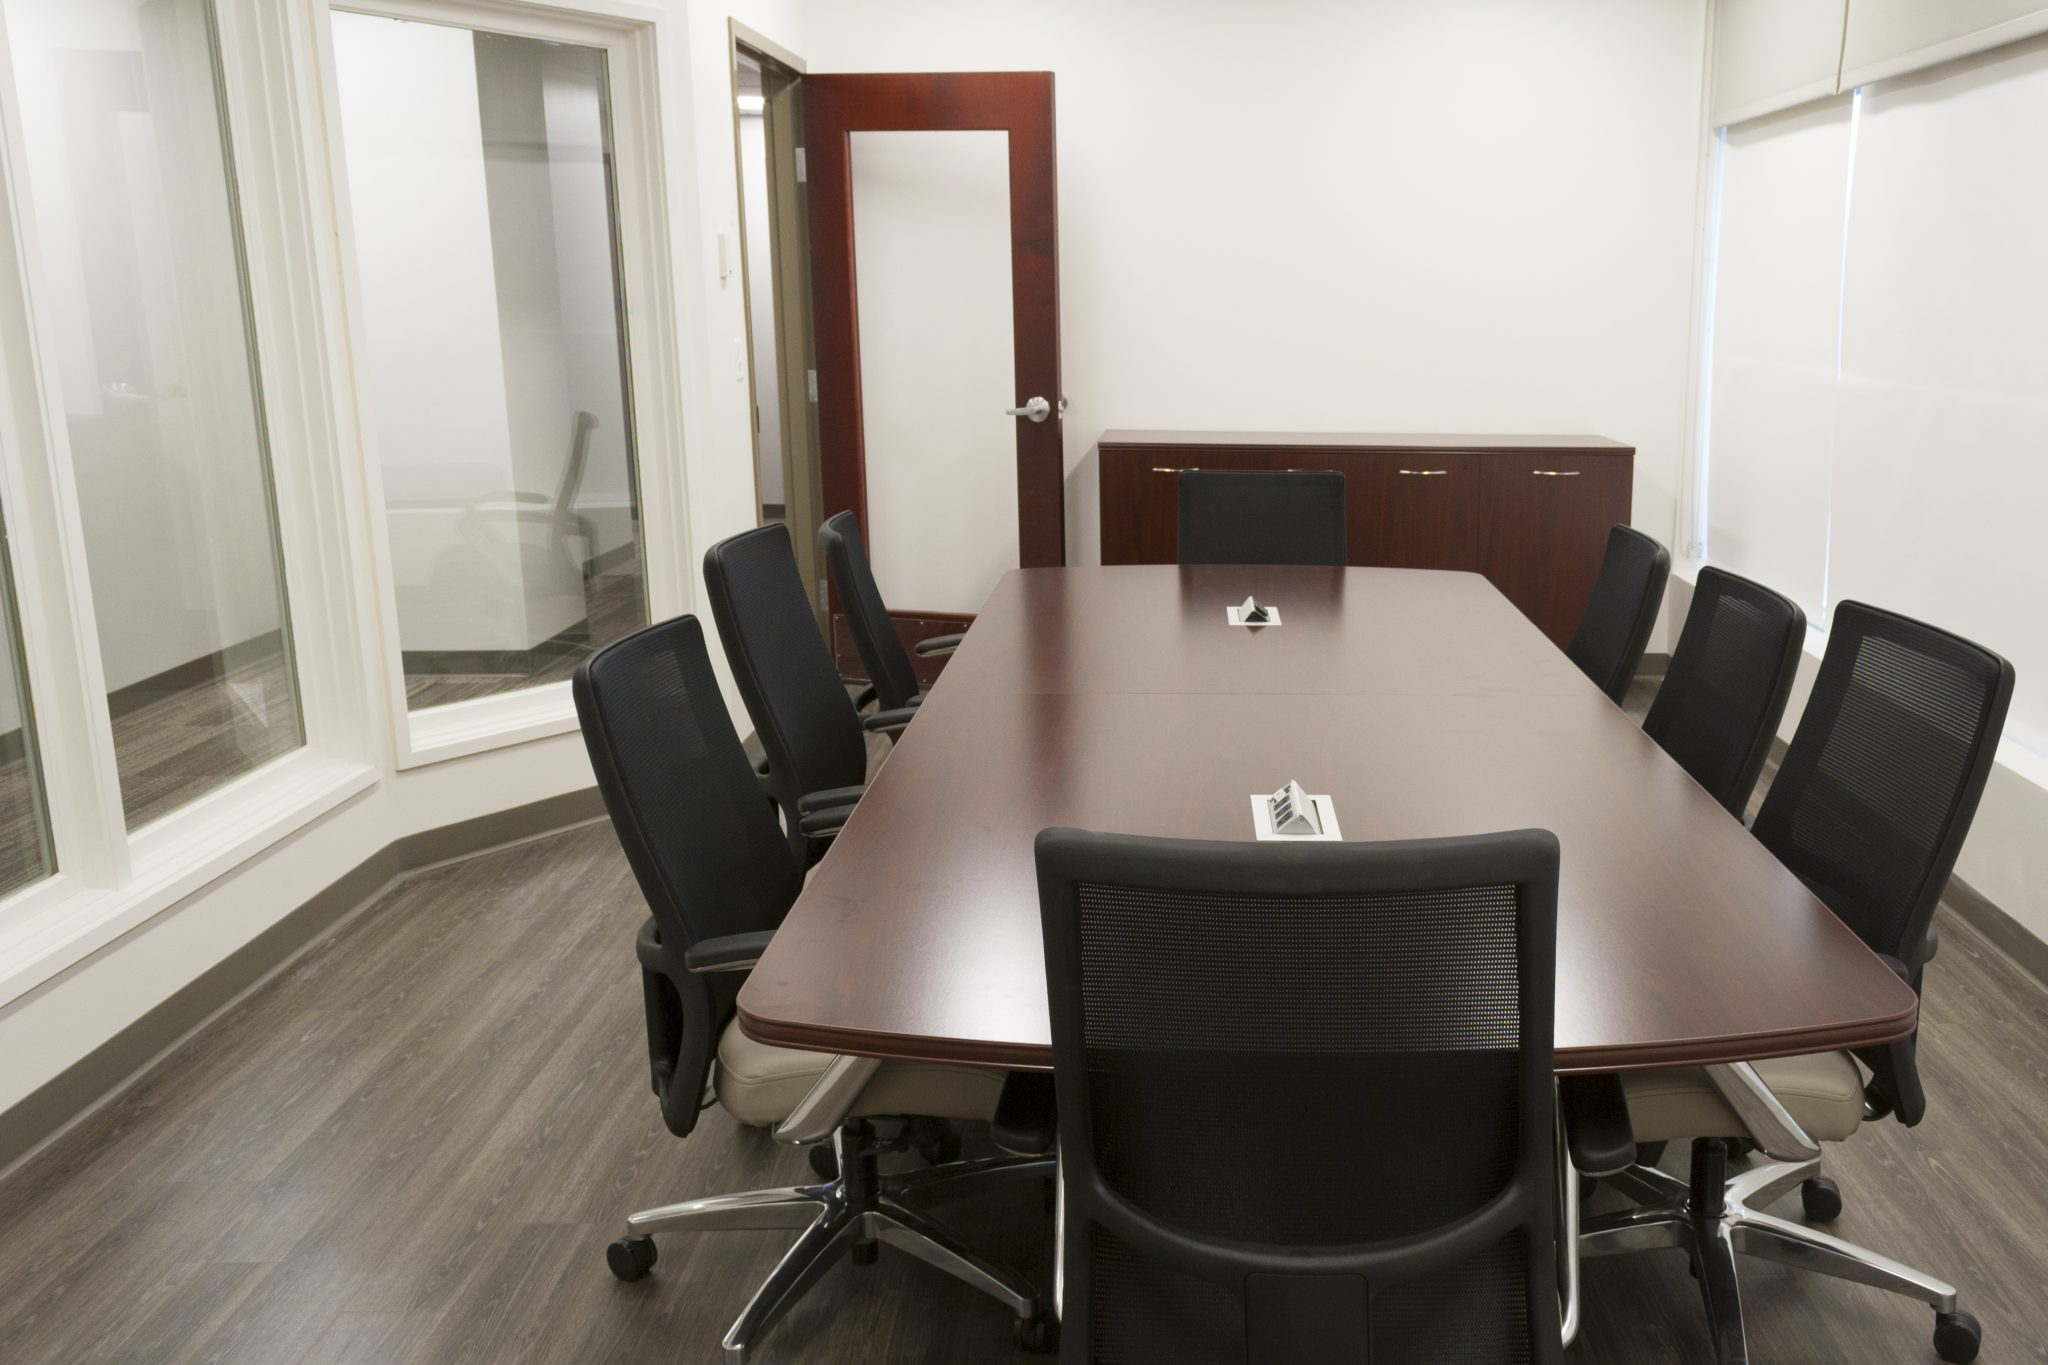 Conference table, chairs and credenza